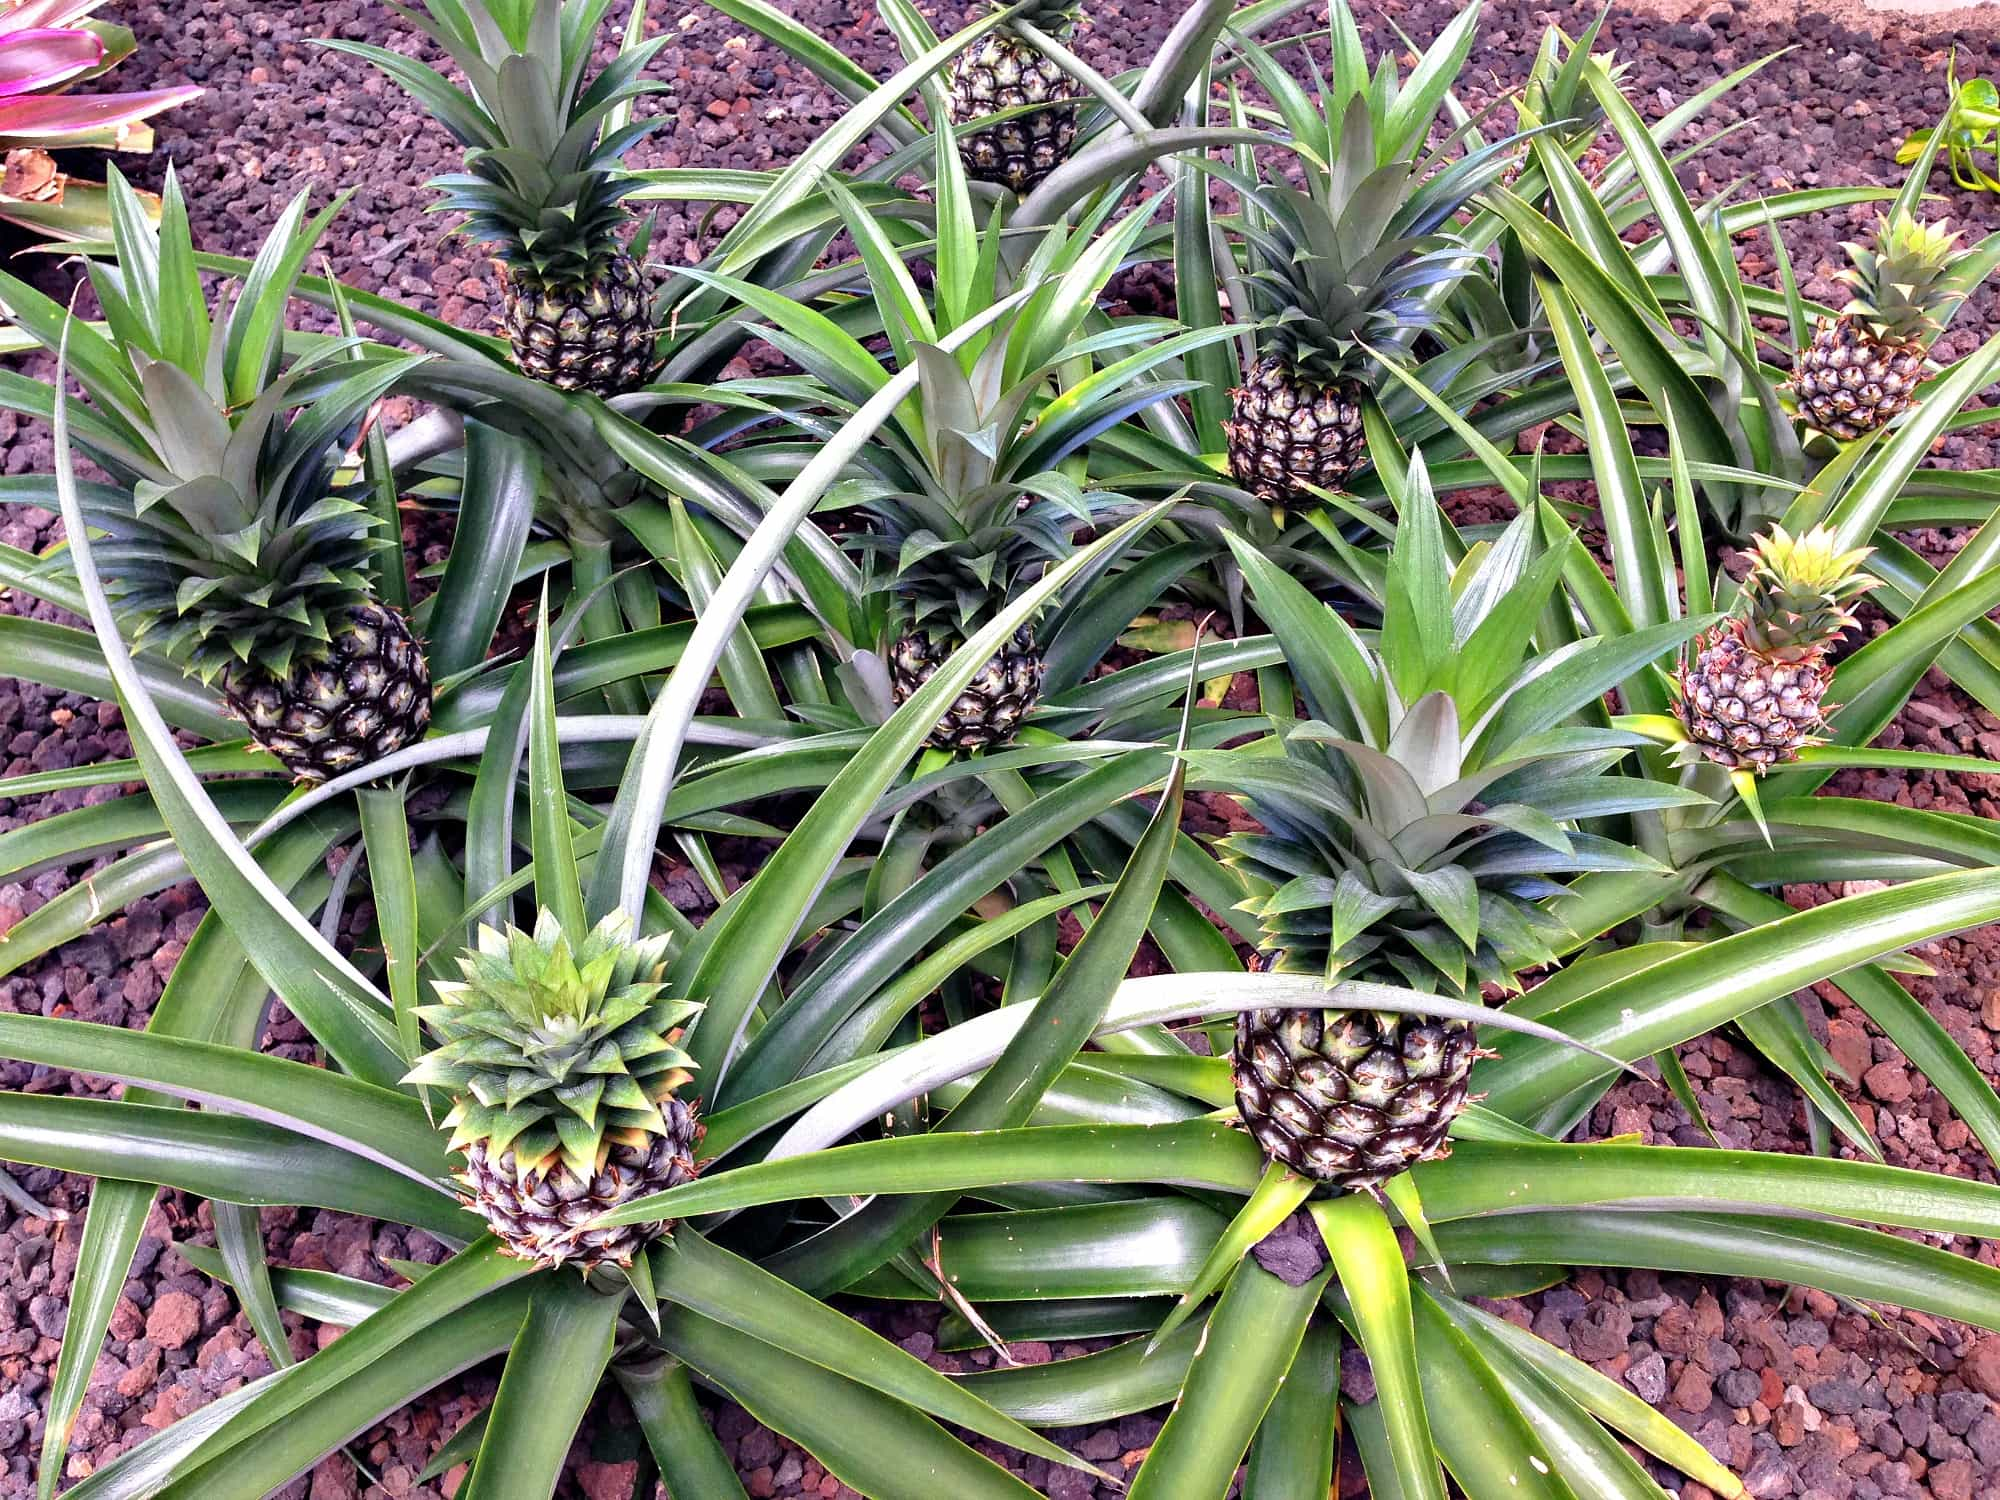 Hyatt Regency Maui Resort and Spa pineapples